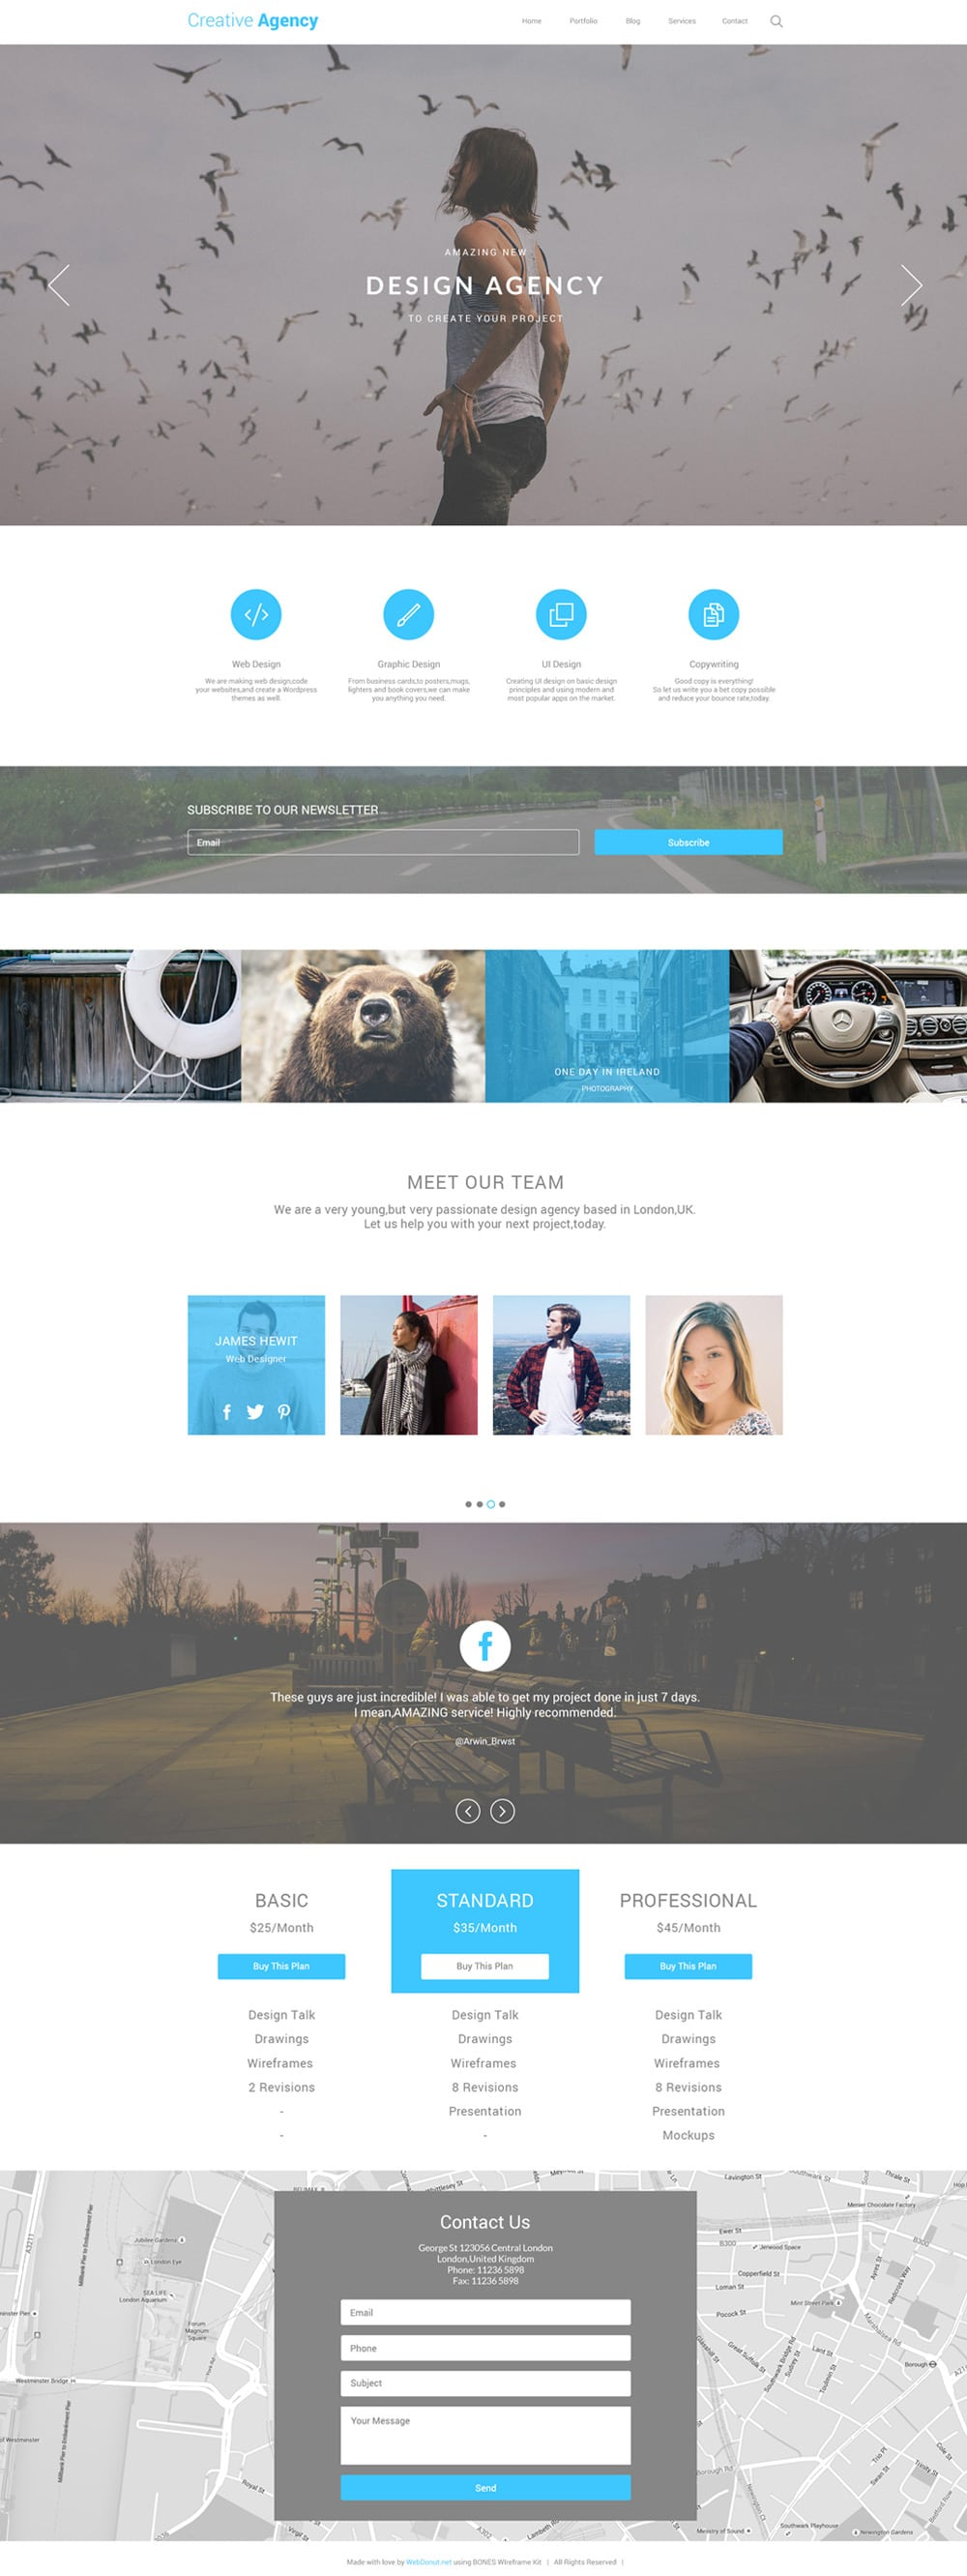 Creative Agency One Page Template PSD